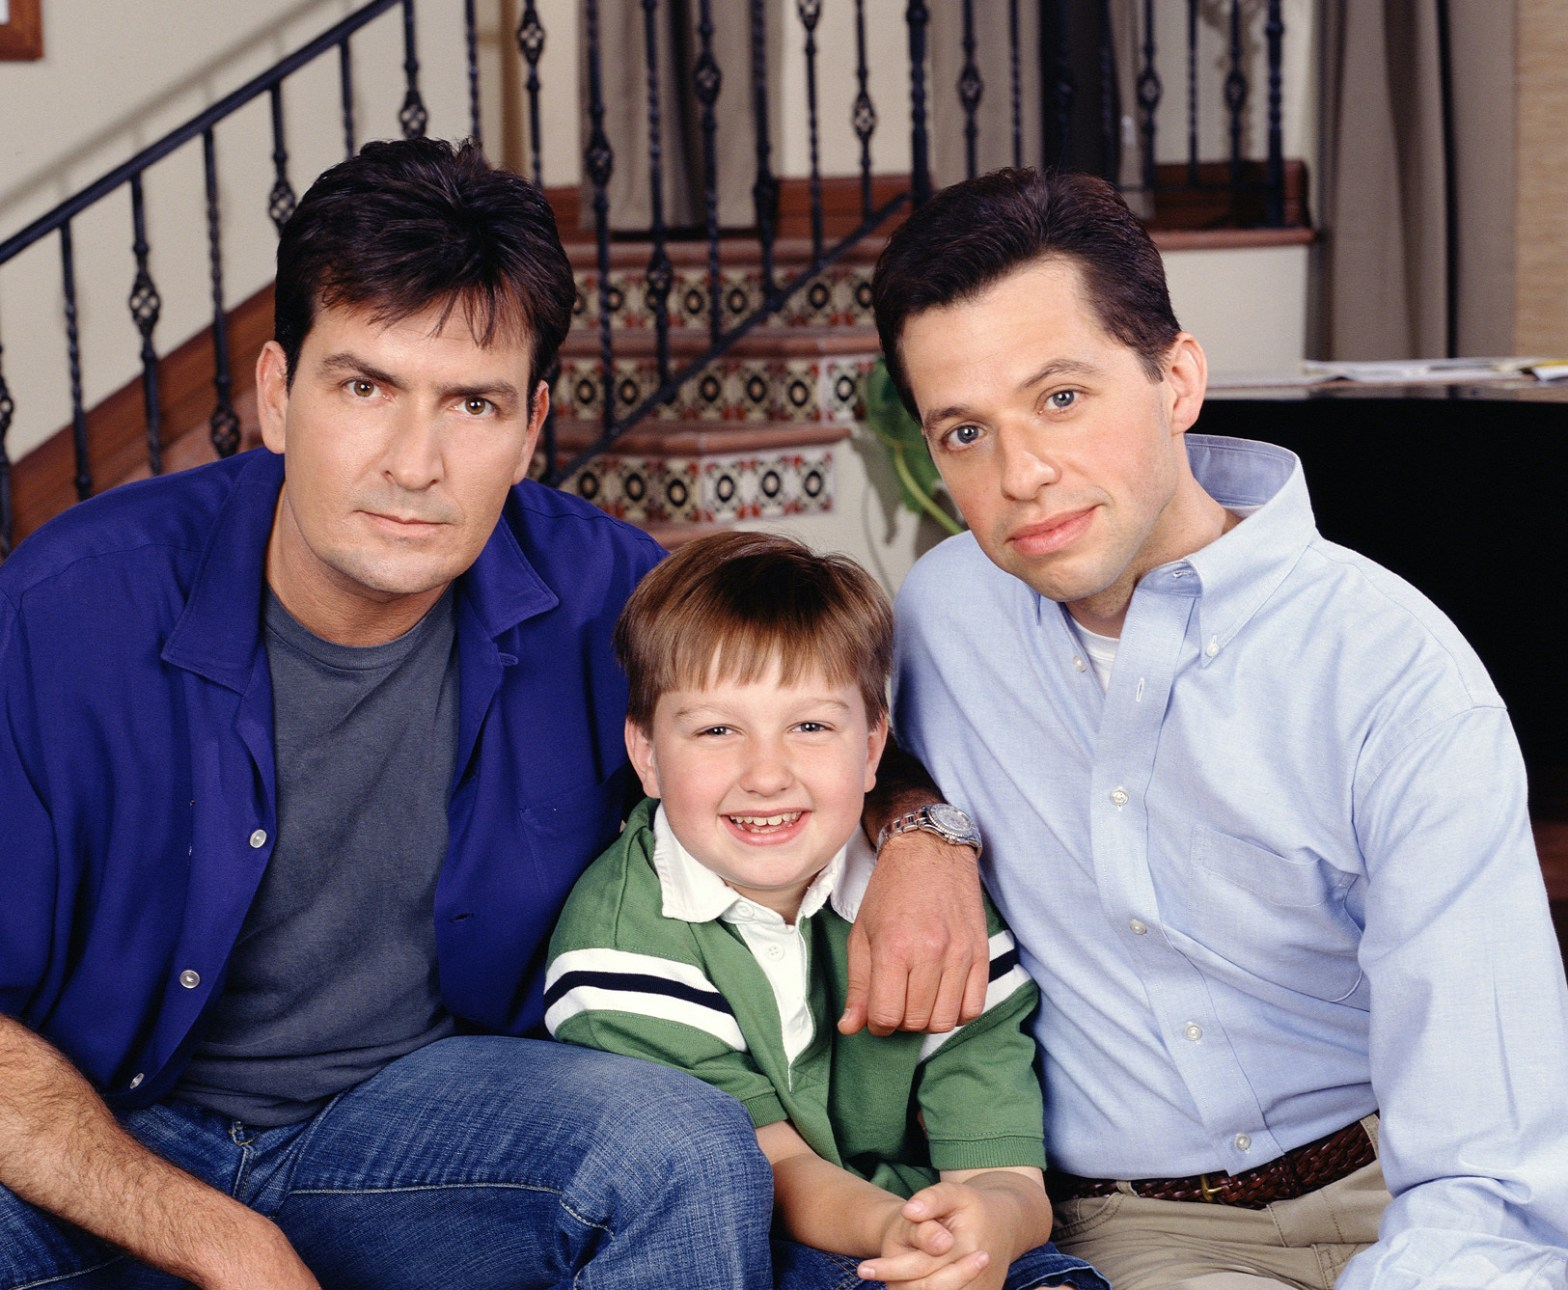 Jake, Charlie and Alan from Two and a Half Men